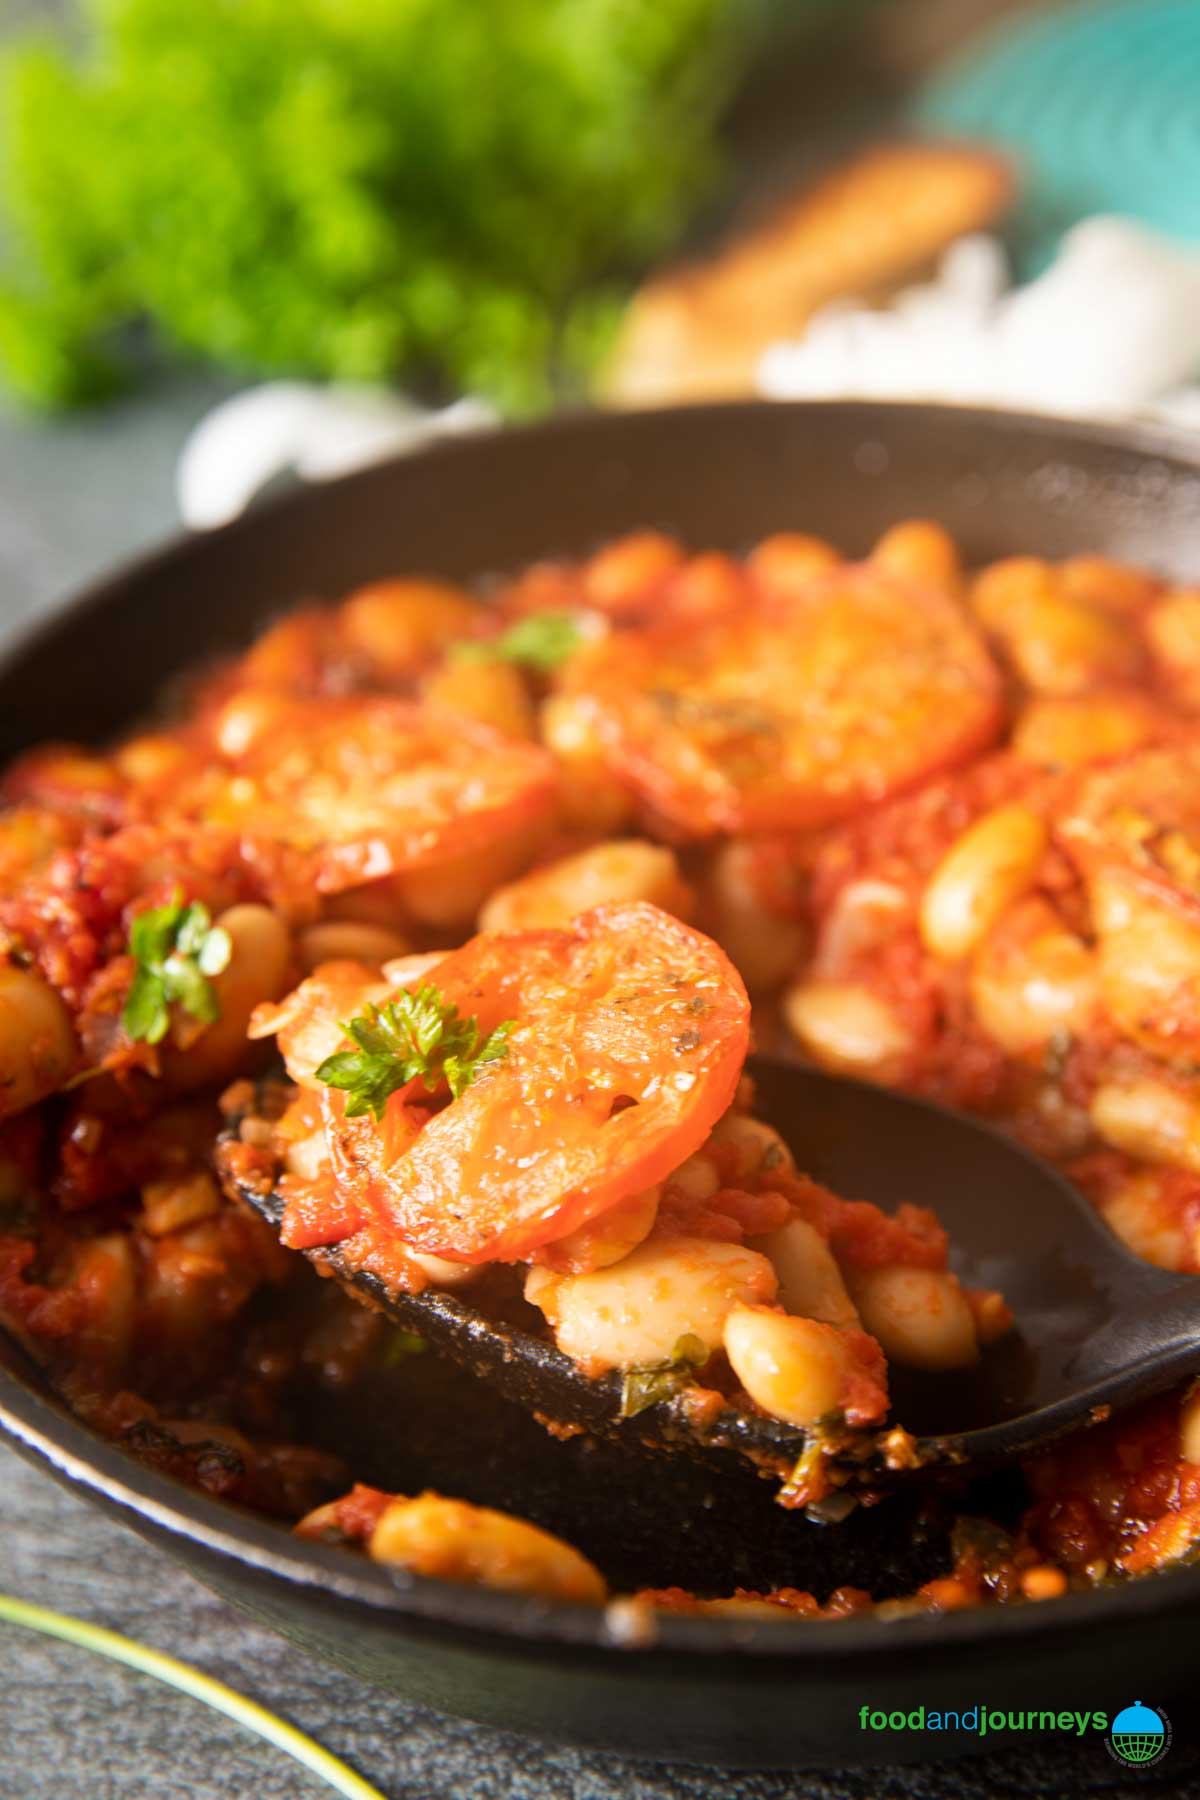 A closer shot of roasted tomatoes and baked beans, ready for serving.